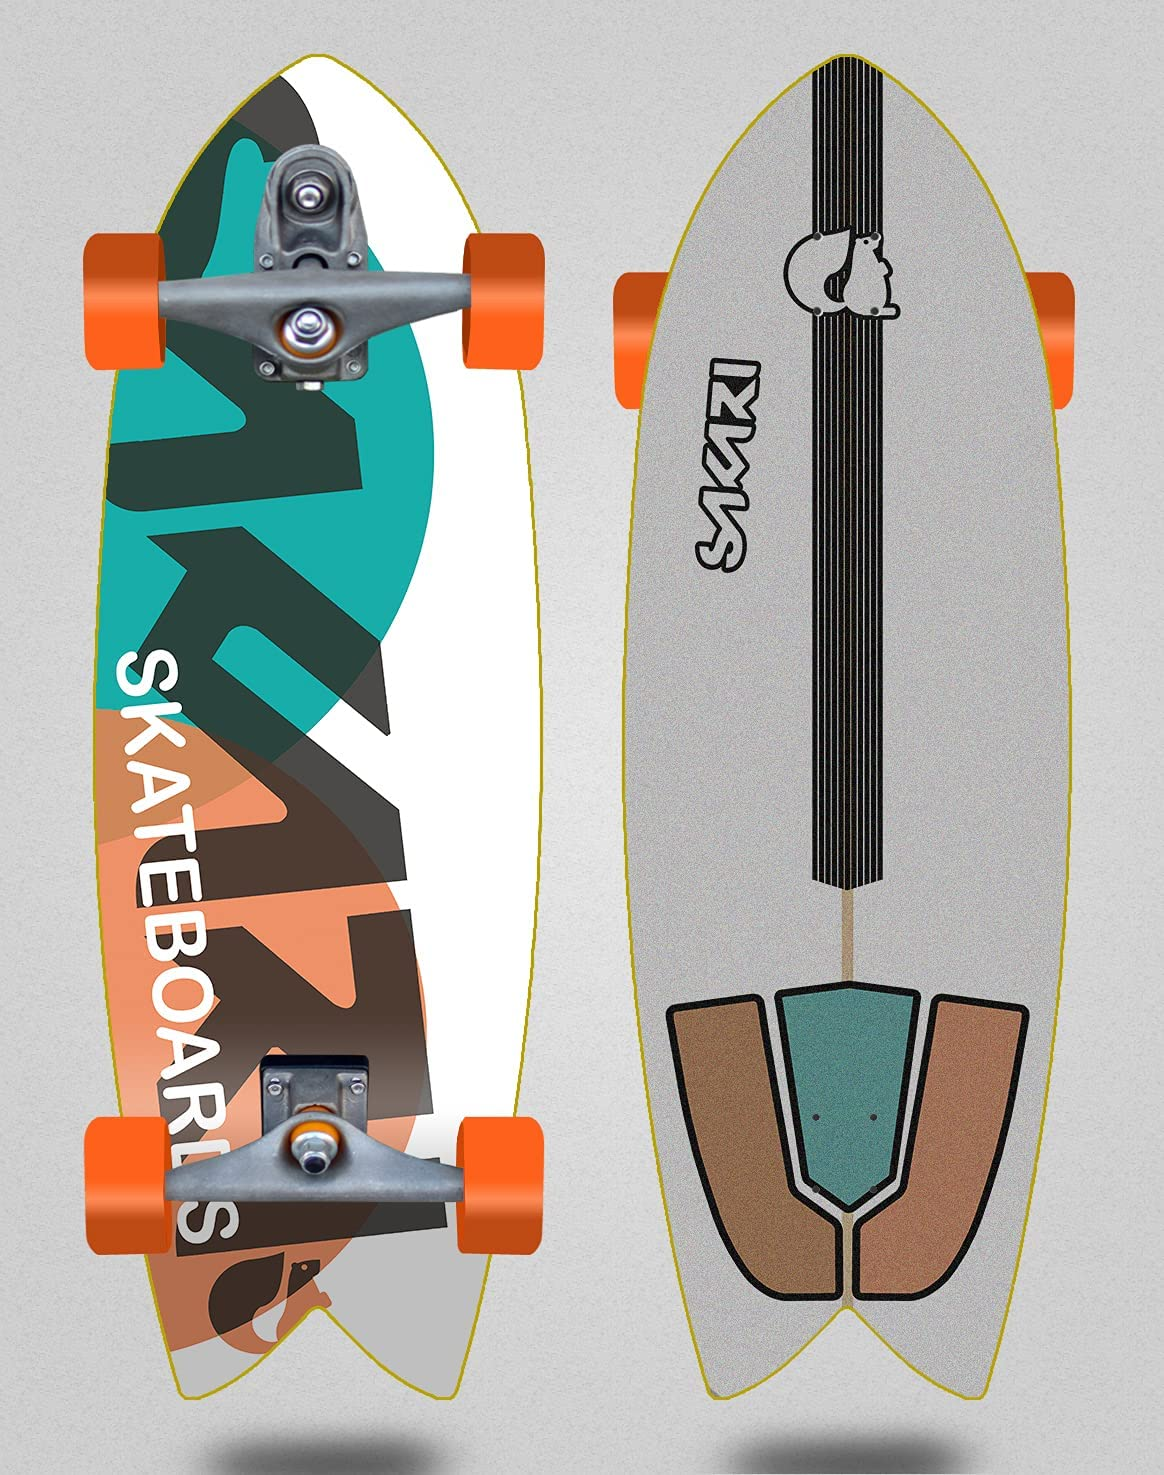 Sakari Surf Skate with At the price of surprise Glutier T12 - FUS Turq Trucks latest